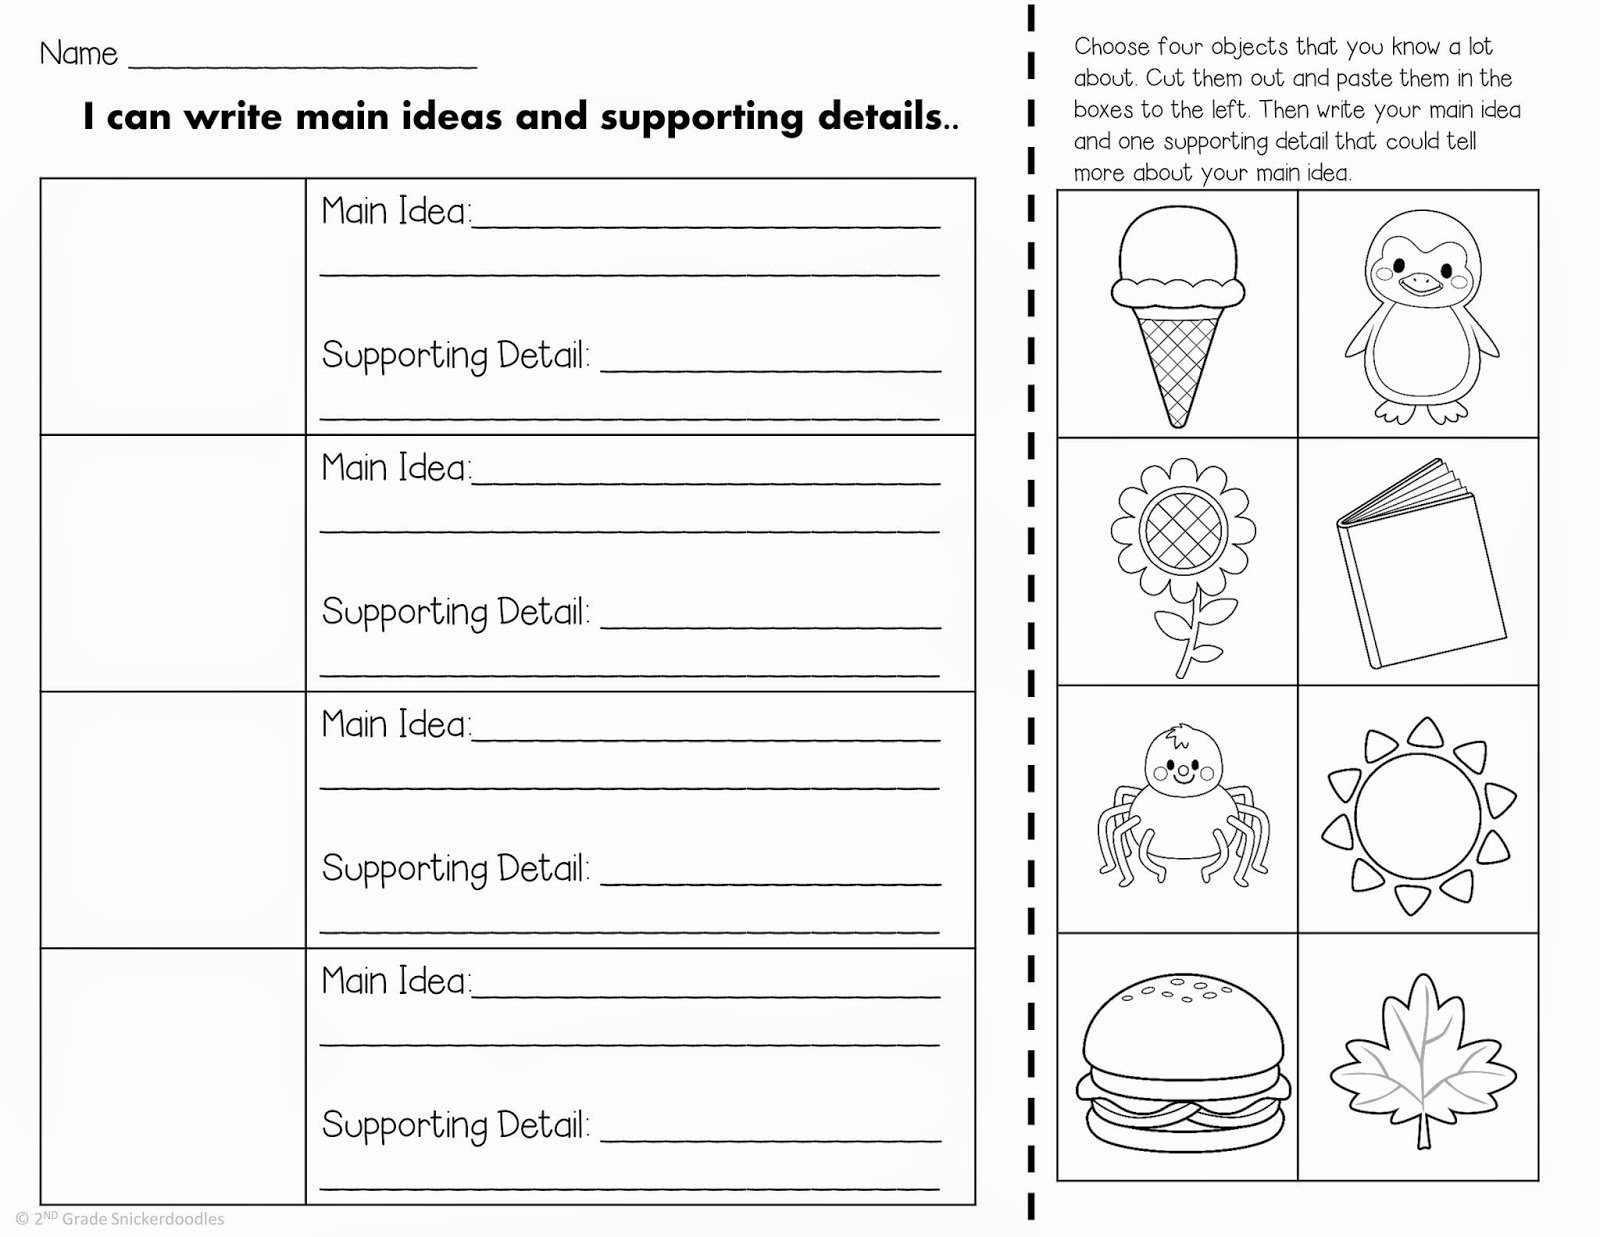 Main Idea Worksheet 2nd Grade Lovely 13 Best Of Main Idea Detail 2nd Grade Worksheet Key